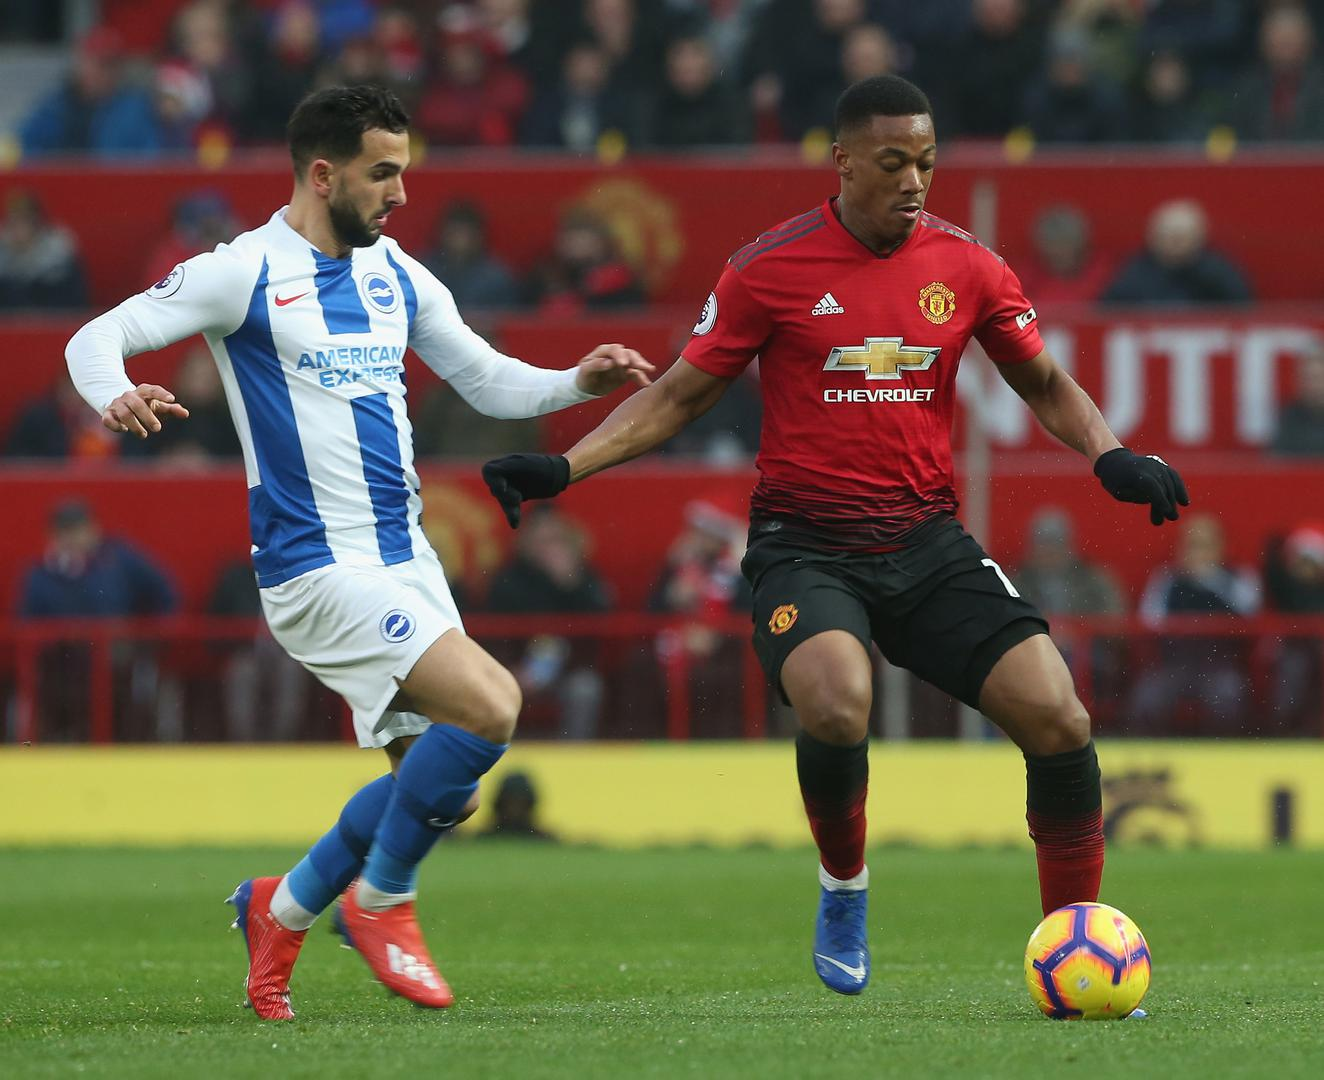 Anthony Martial on the ball in Manchester United's 2-1 win against Brighton and Hove Albion